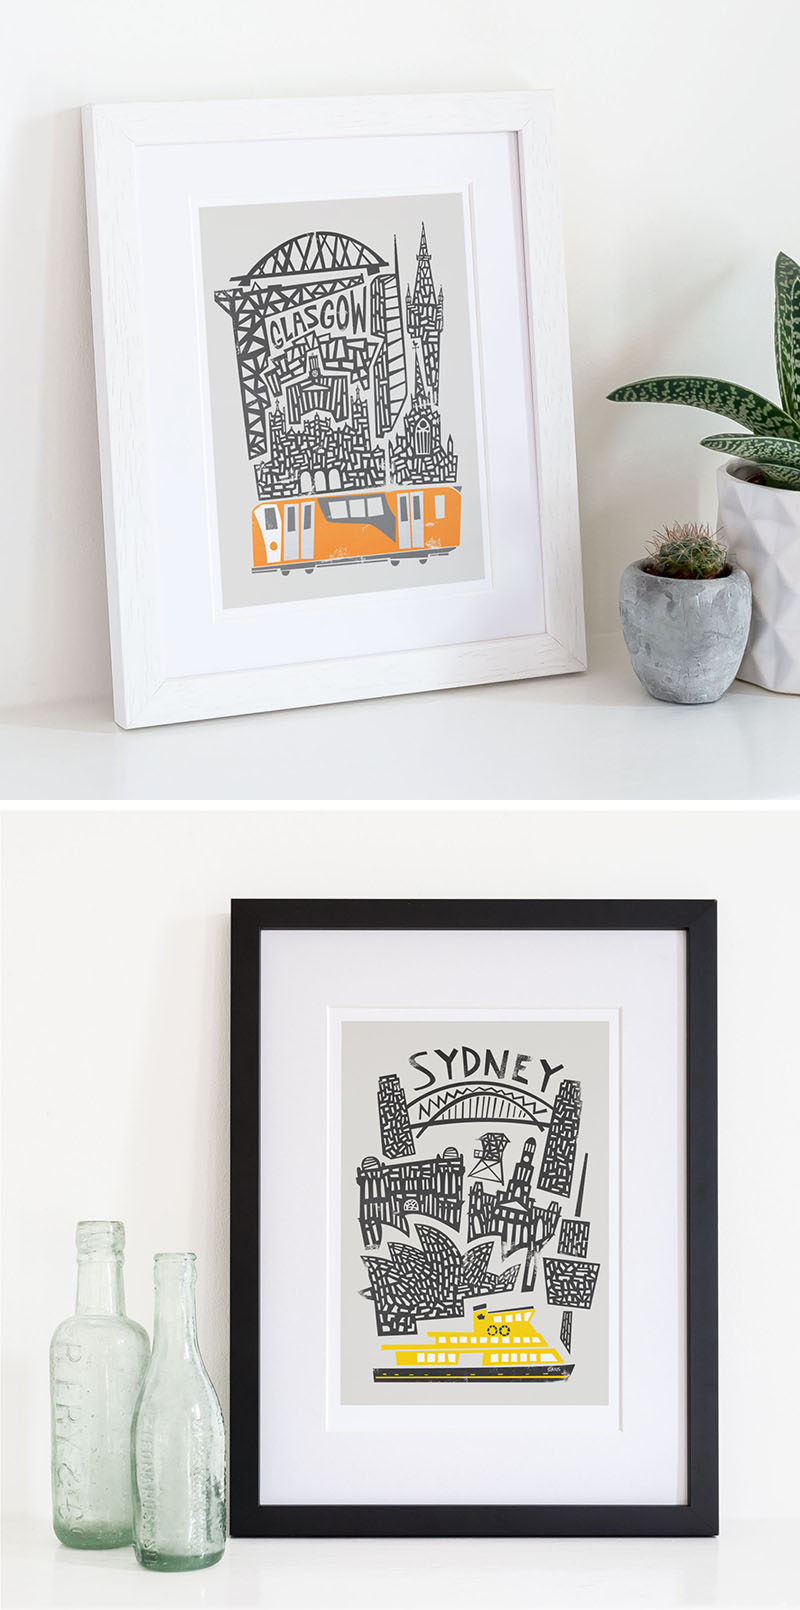 DECOR IDEA - Fill Your Walls With Art Prints Of Your Favorite Cities